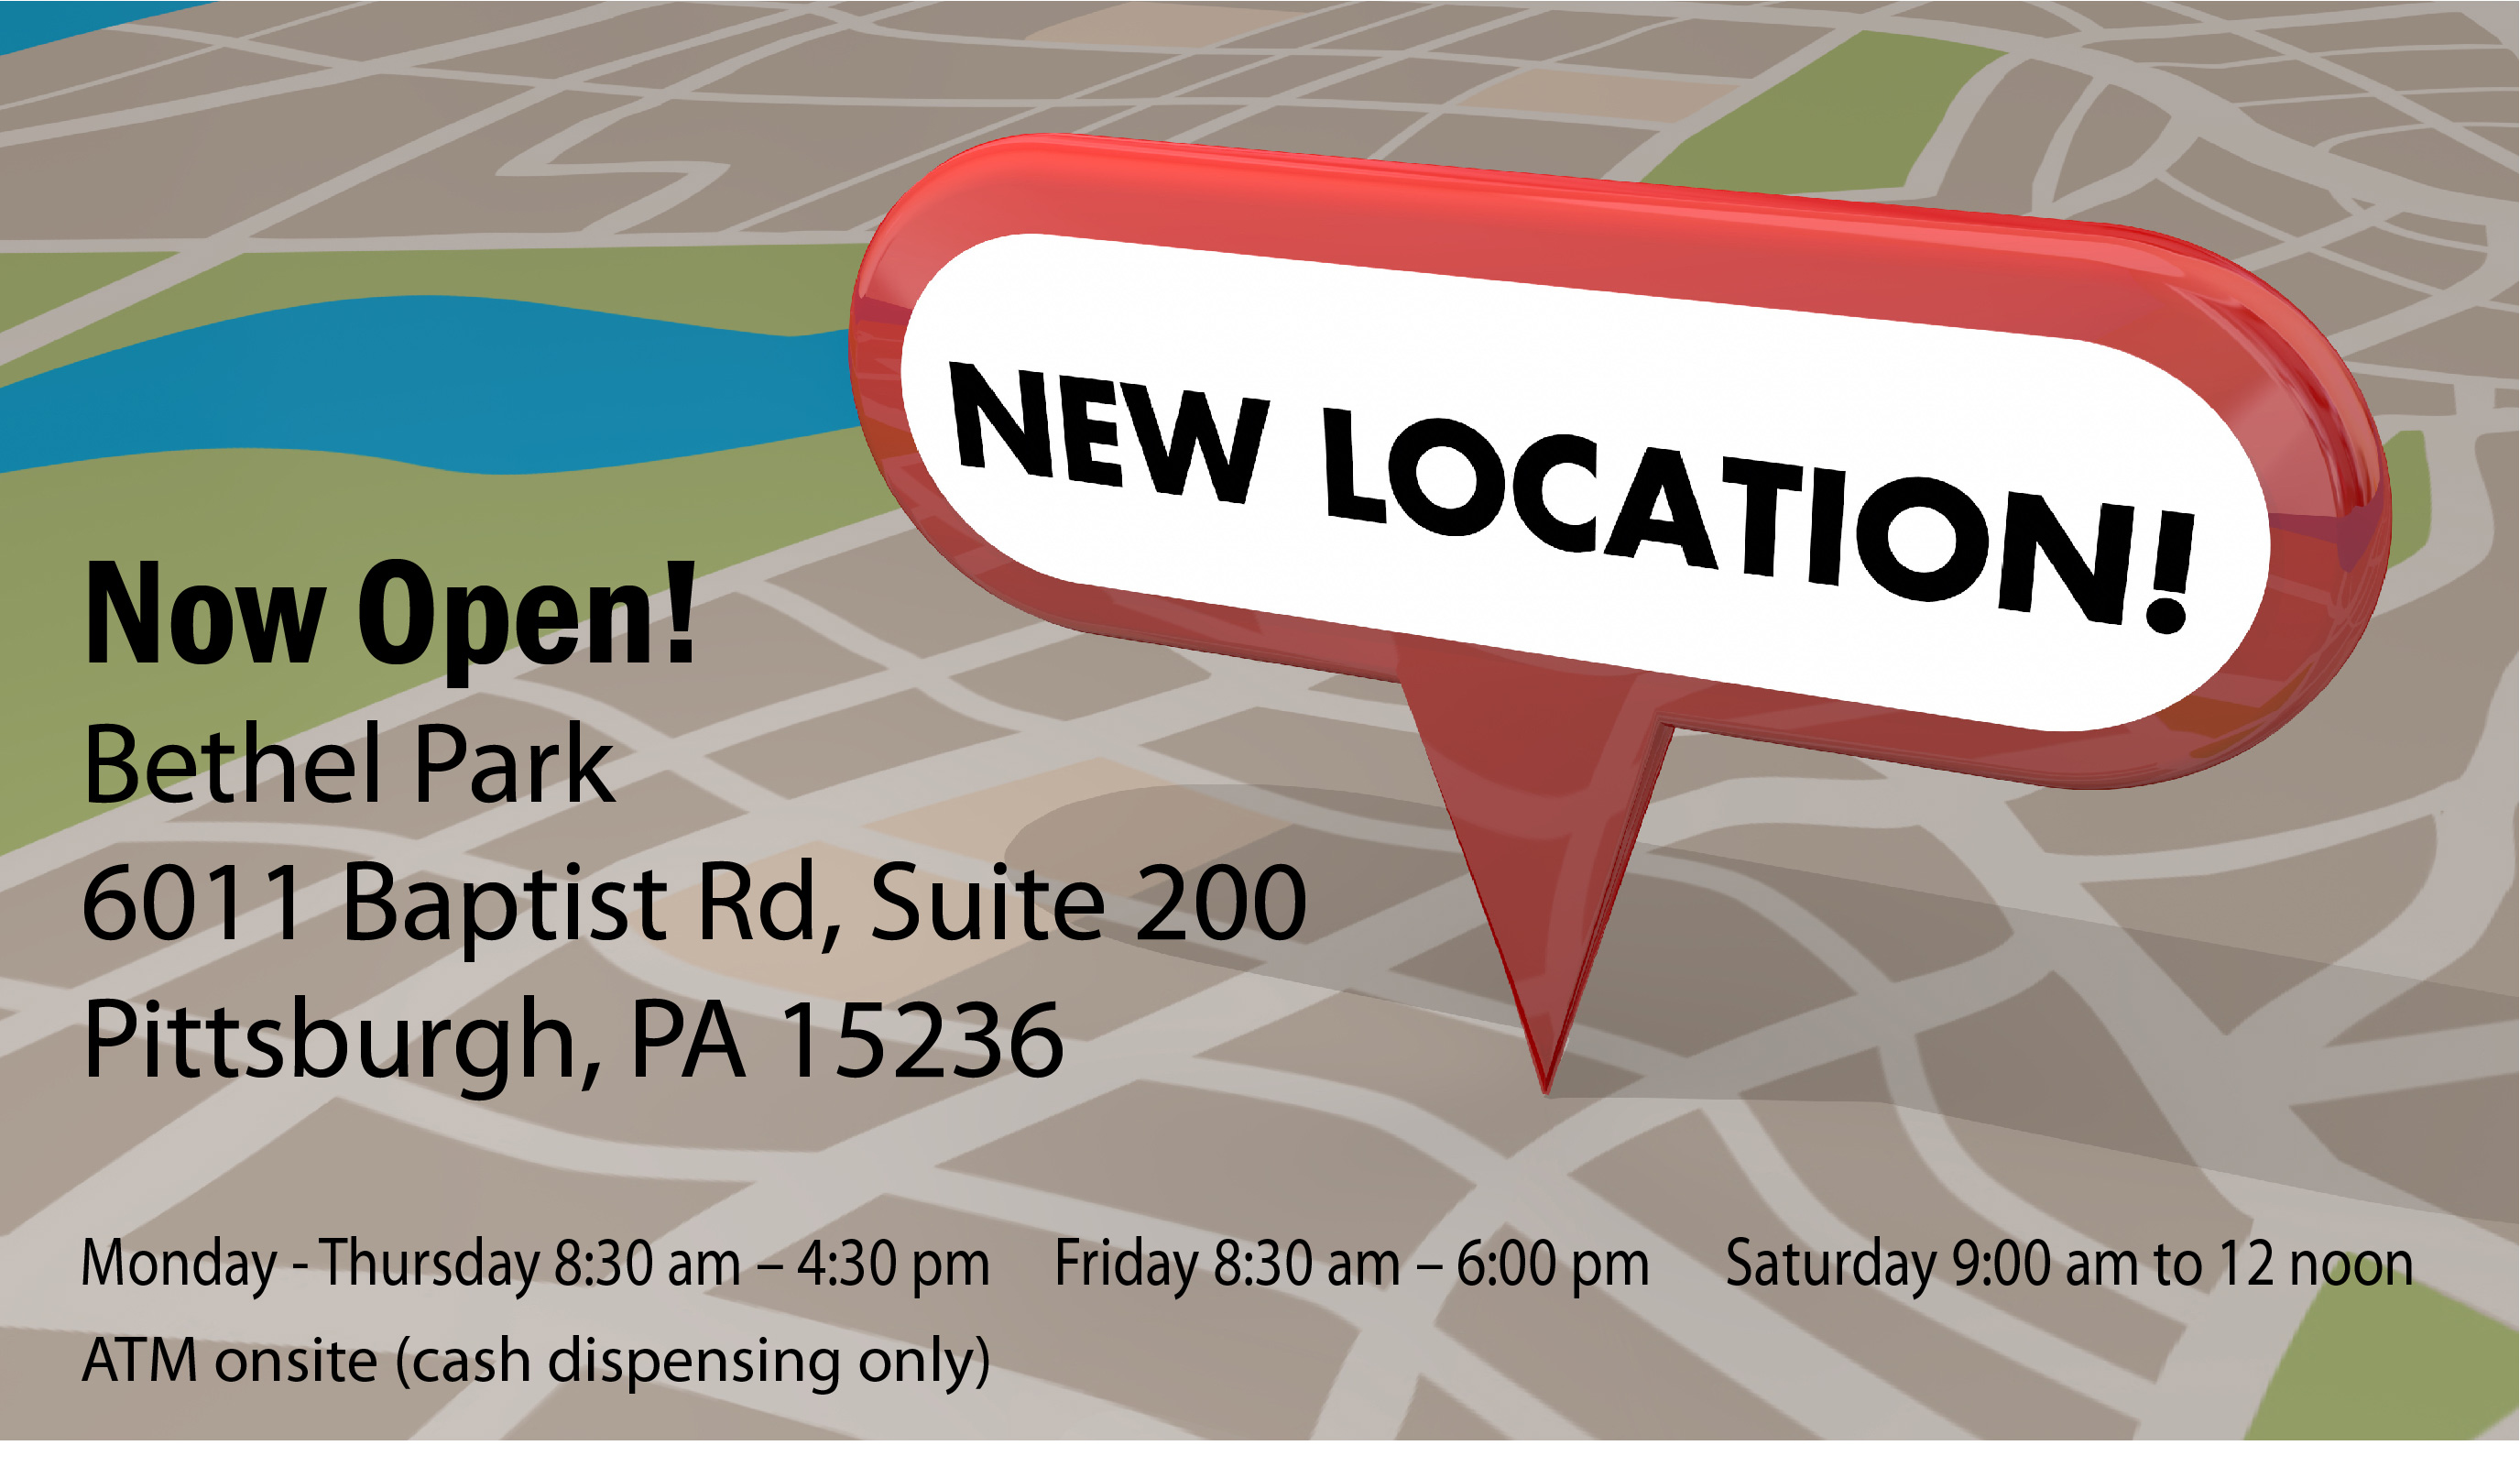 Our Bethel Park Branch is Now Open!